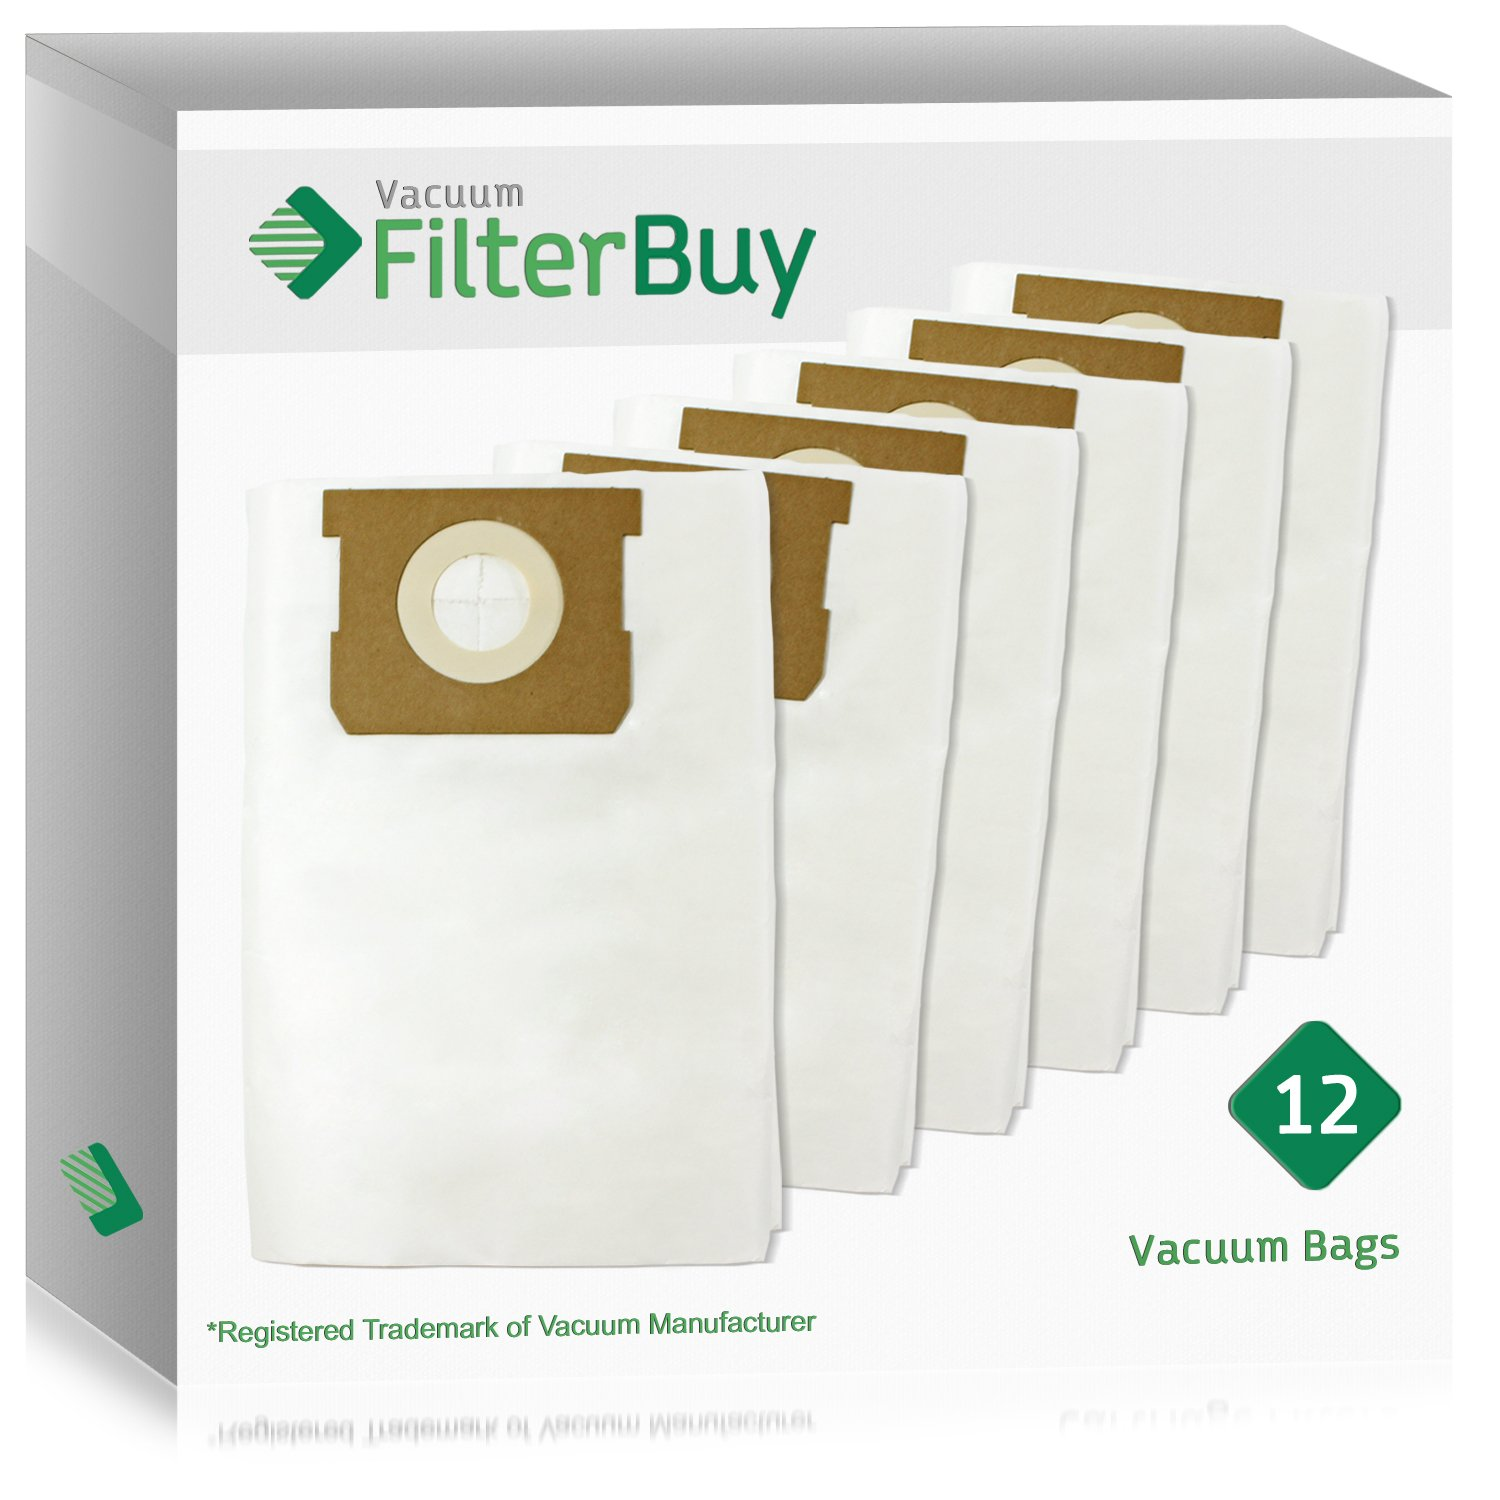 12 - FilterBuy VacMaster Compatible Dust Bags. Designed by FilterBuy to fit VacMaster & Shop-Vac Vacuum Cleaners.